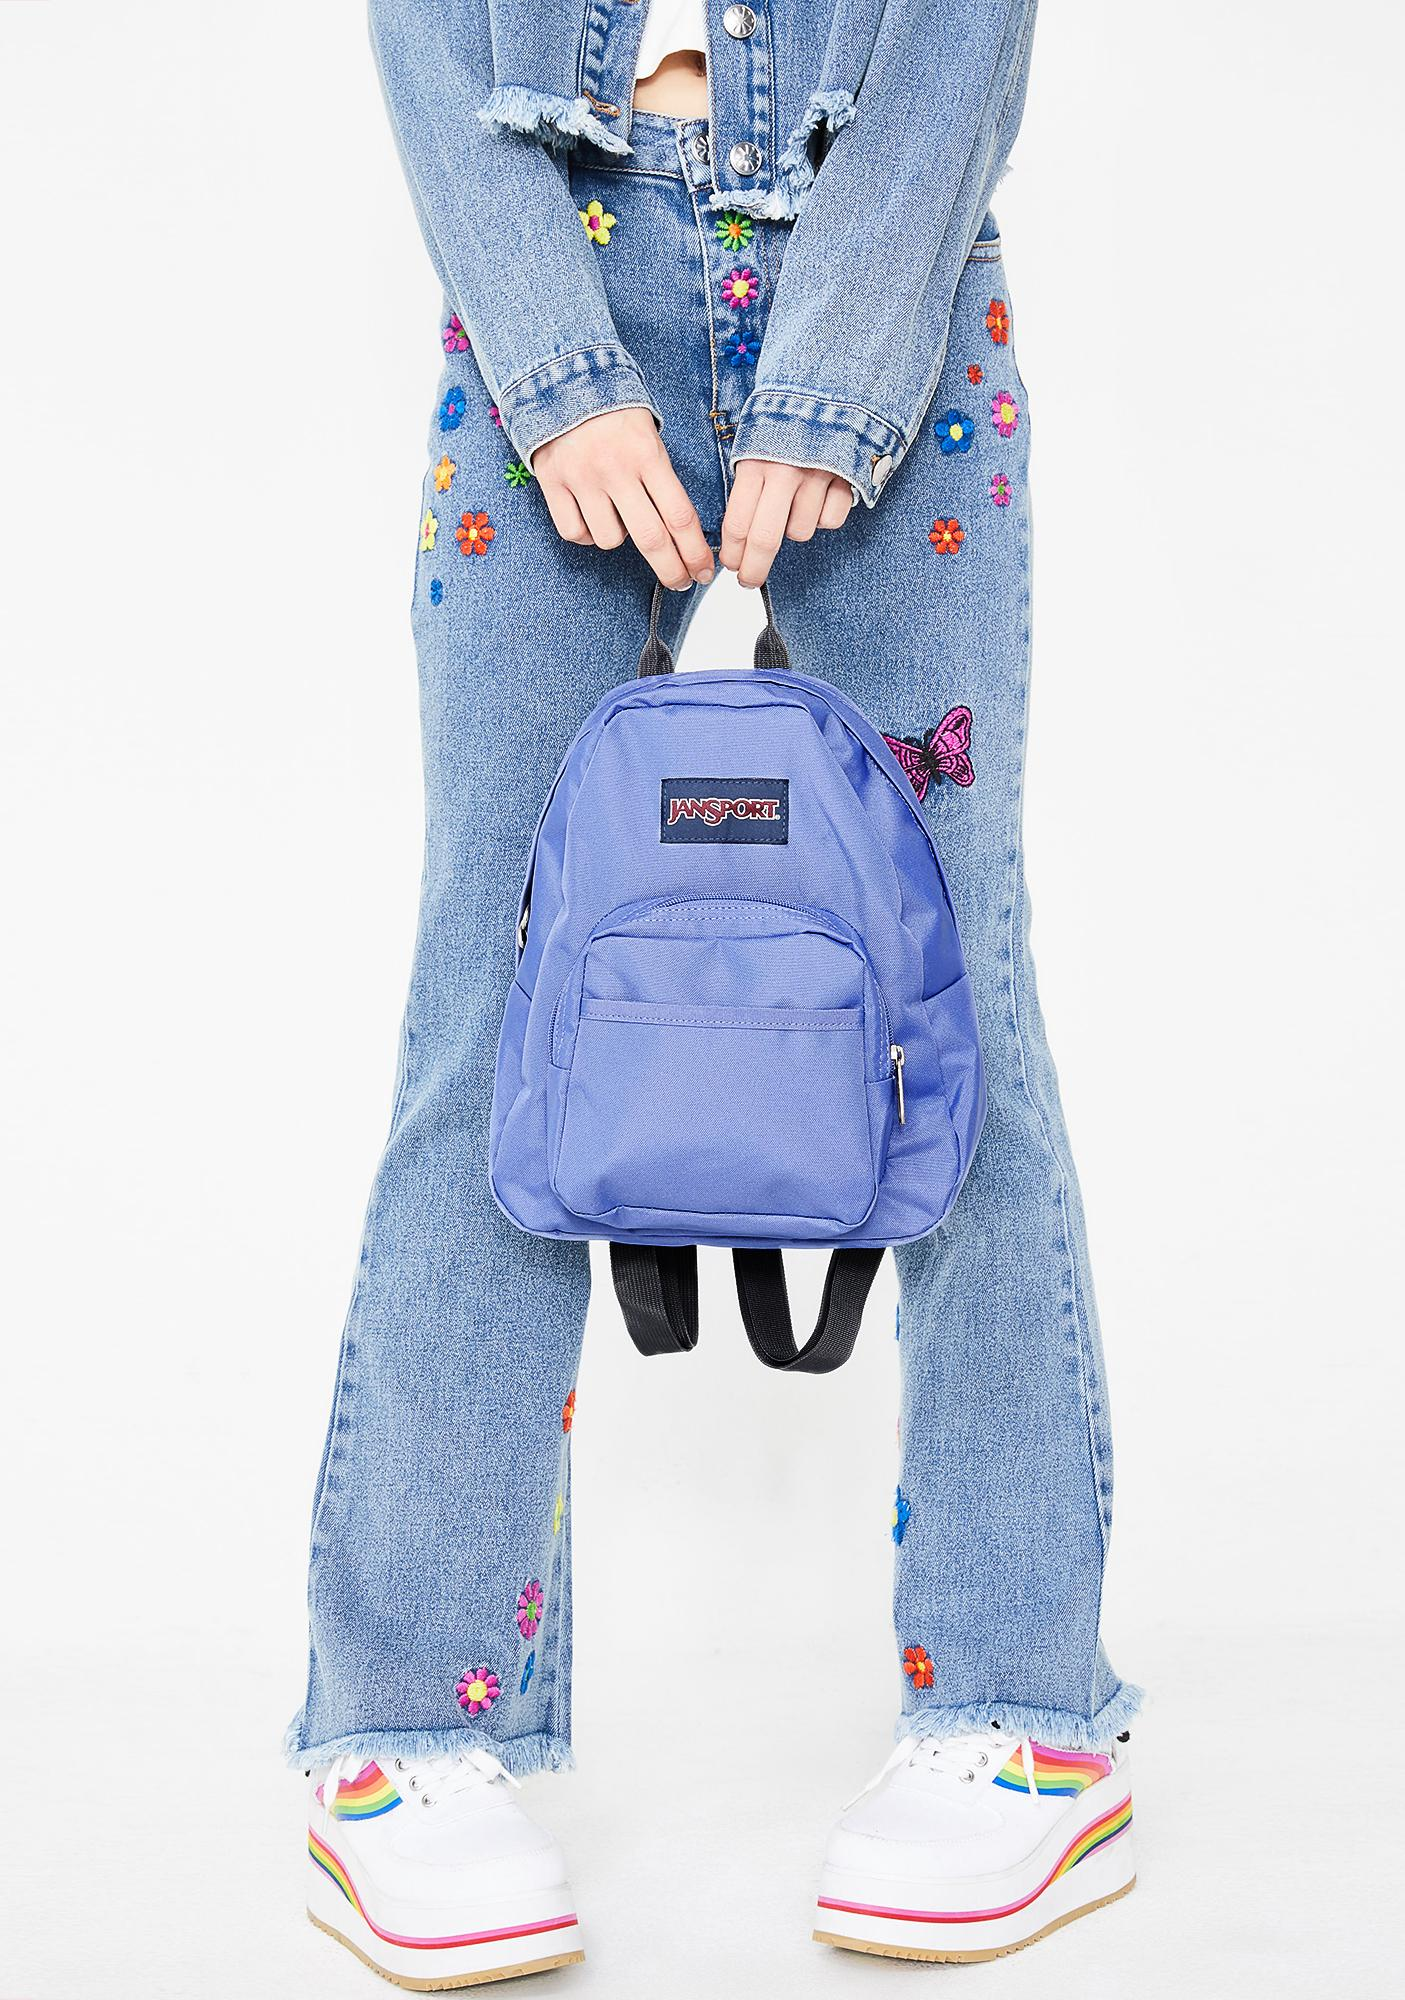 773942c9eb0 JanSport Half Pint Mini Backpack | Dolls Kill